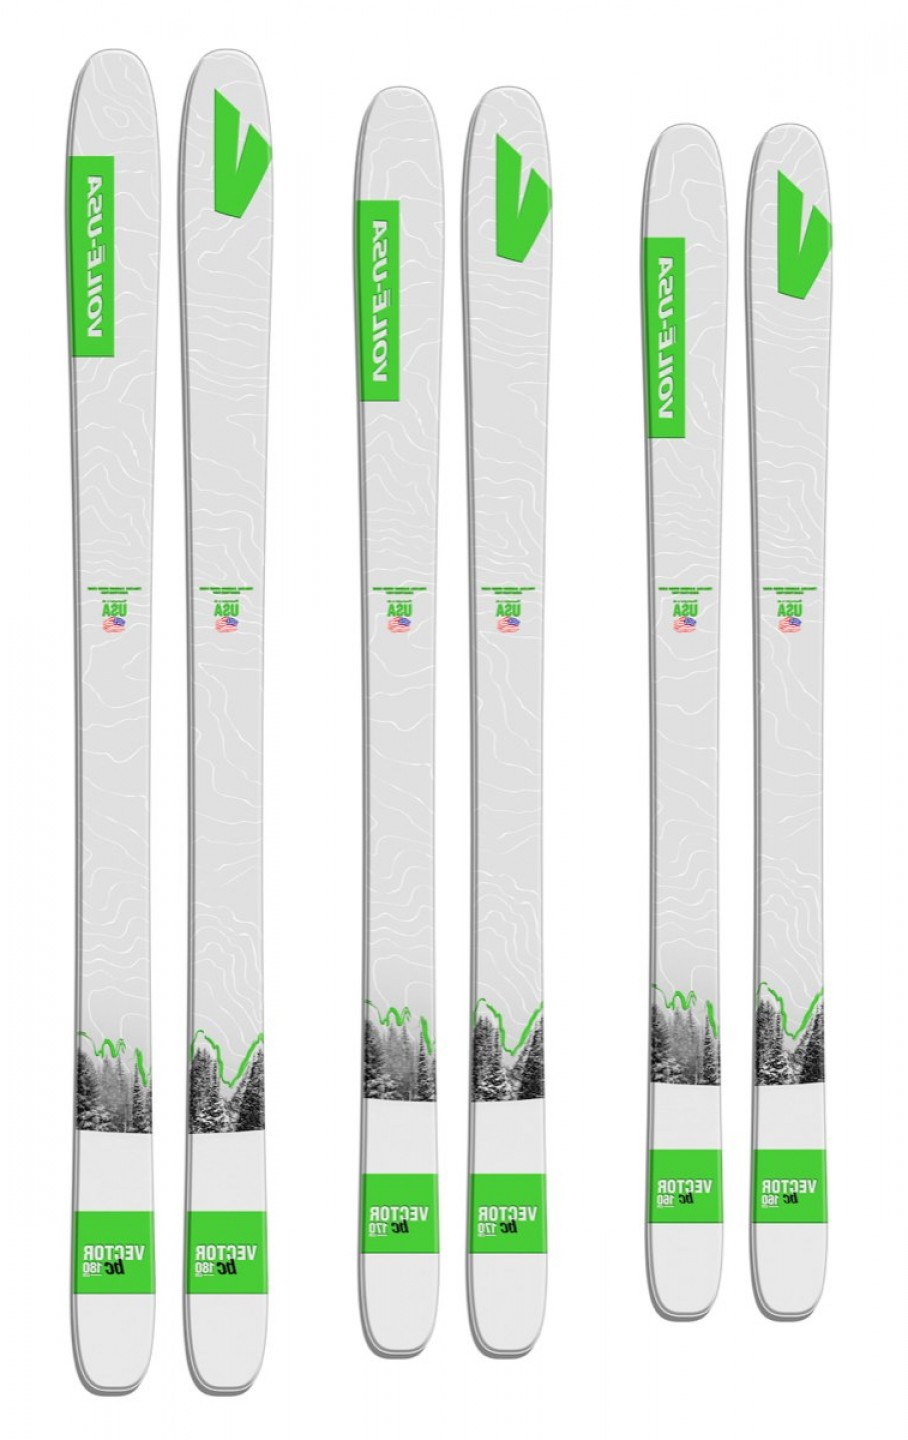 Voile Vector Ski Review: New Voile Backcountry Waxless Skis In Stock Now